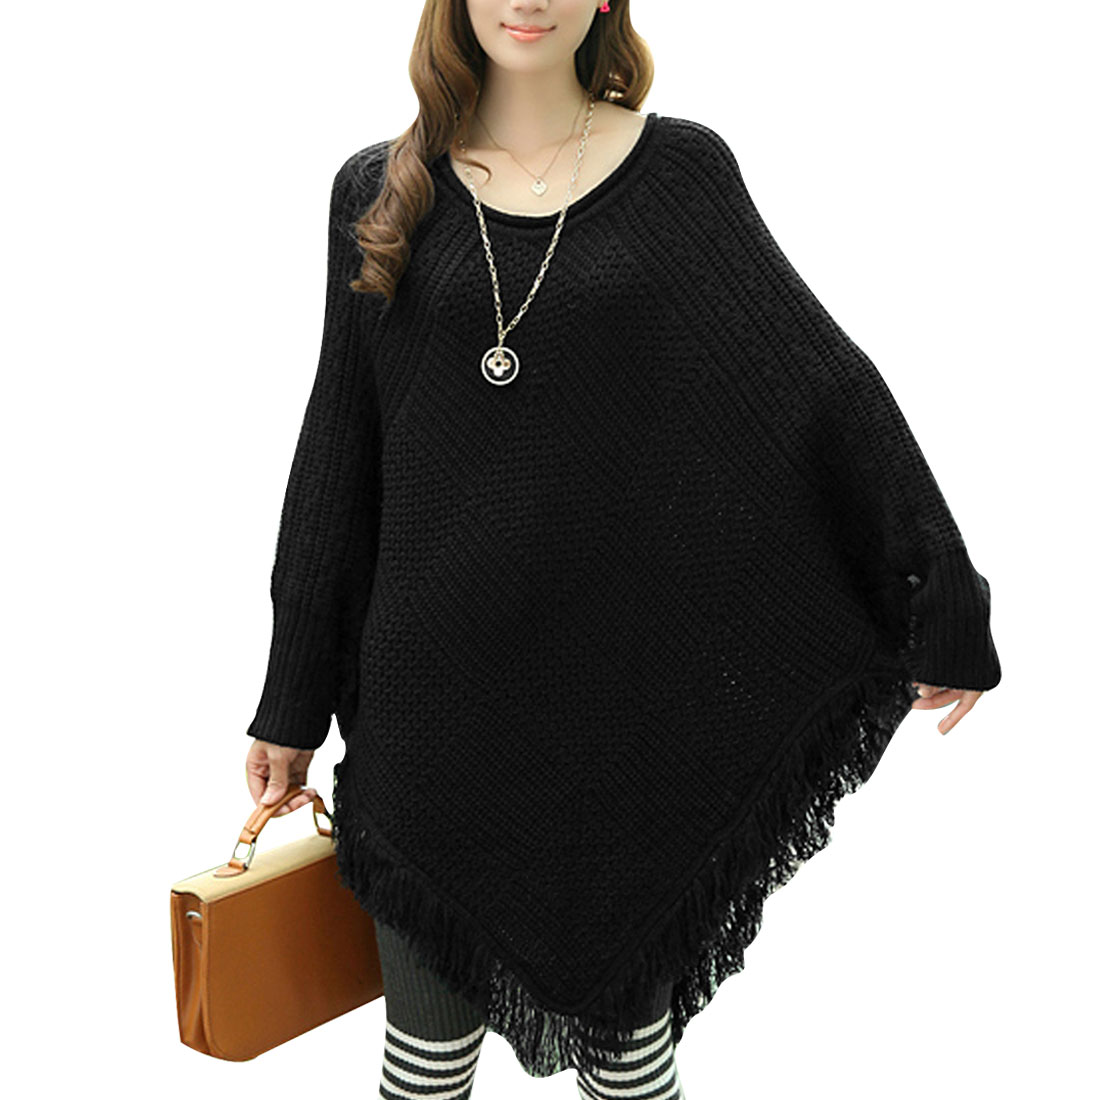 Lady Round Neck Long Batwing Sleeve Tassels Detail Black Sweater XS